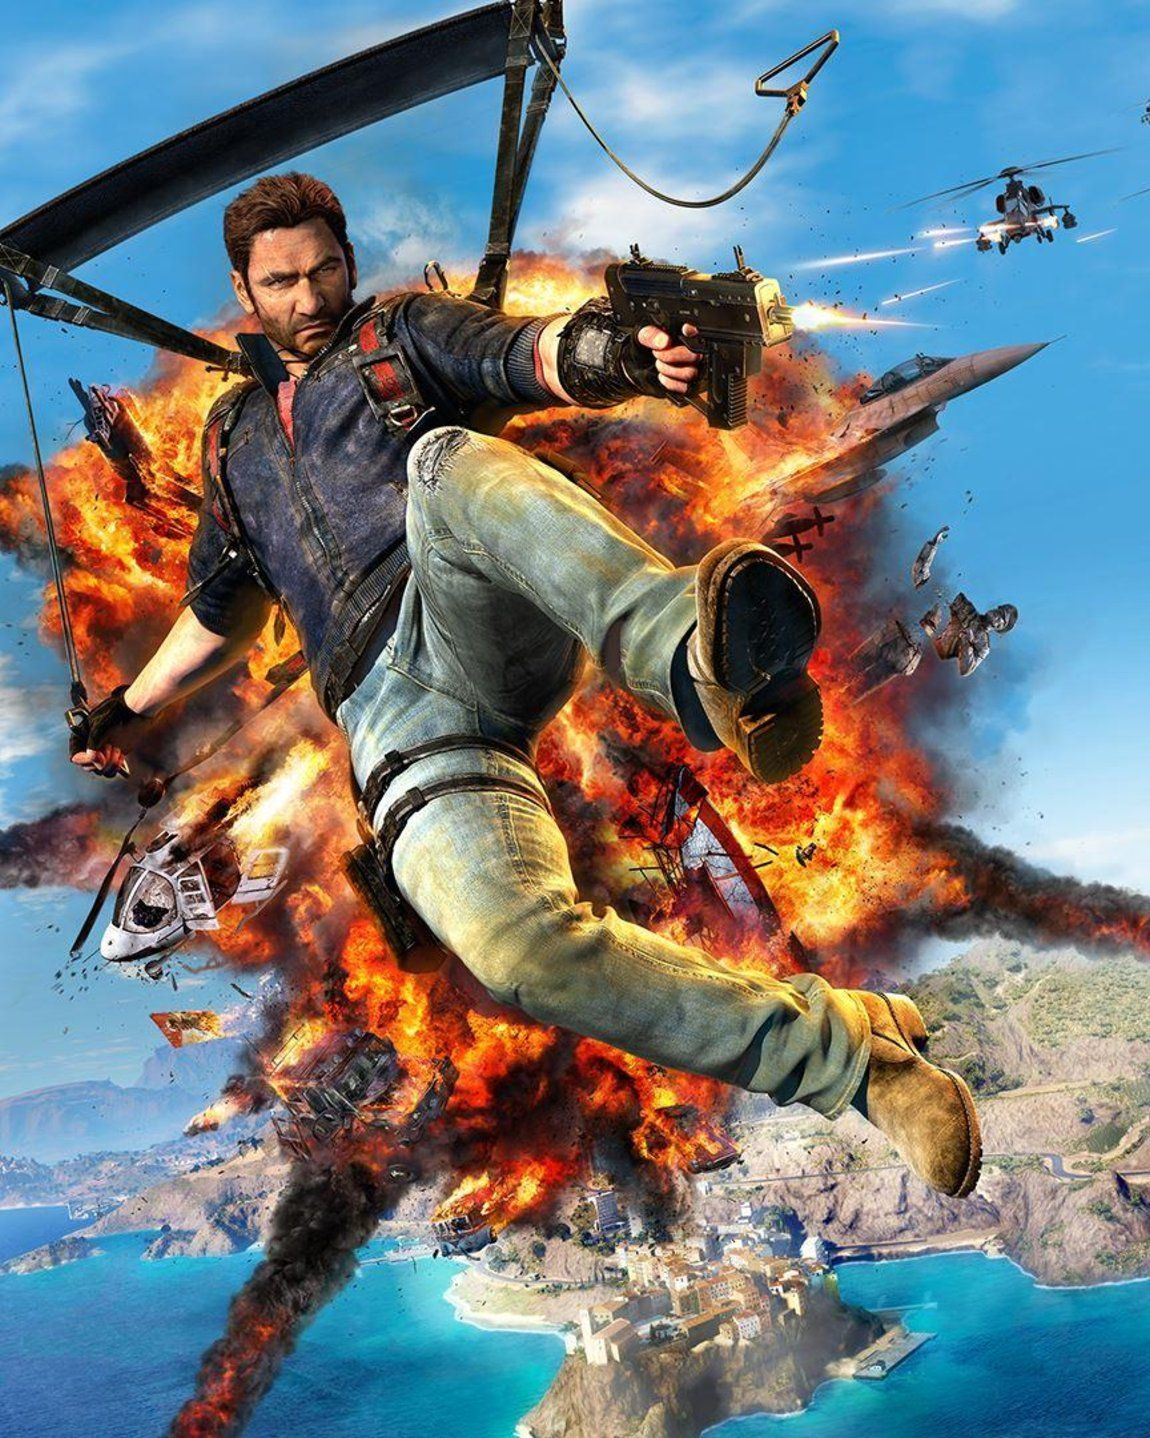 Just Cause 3 Wallpapers Top Free Just Cause 3 Backgrounds Wallpaperaccess Just Cause 3 Plus Games News Games